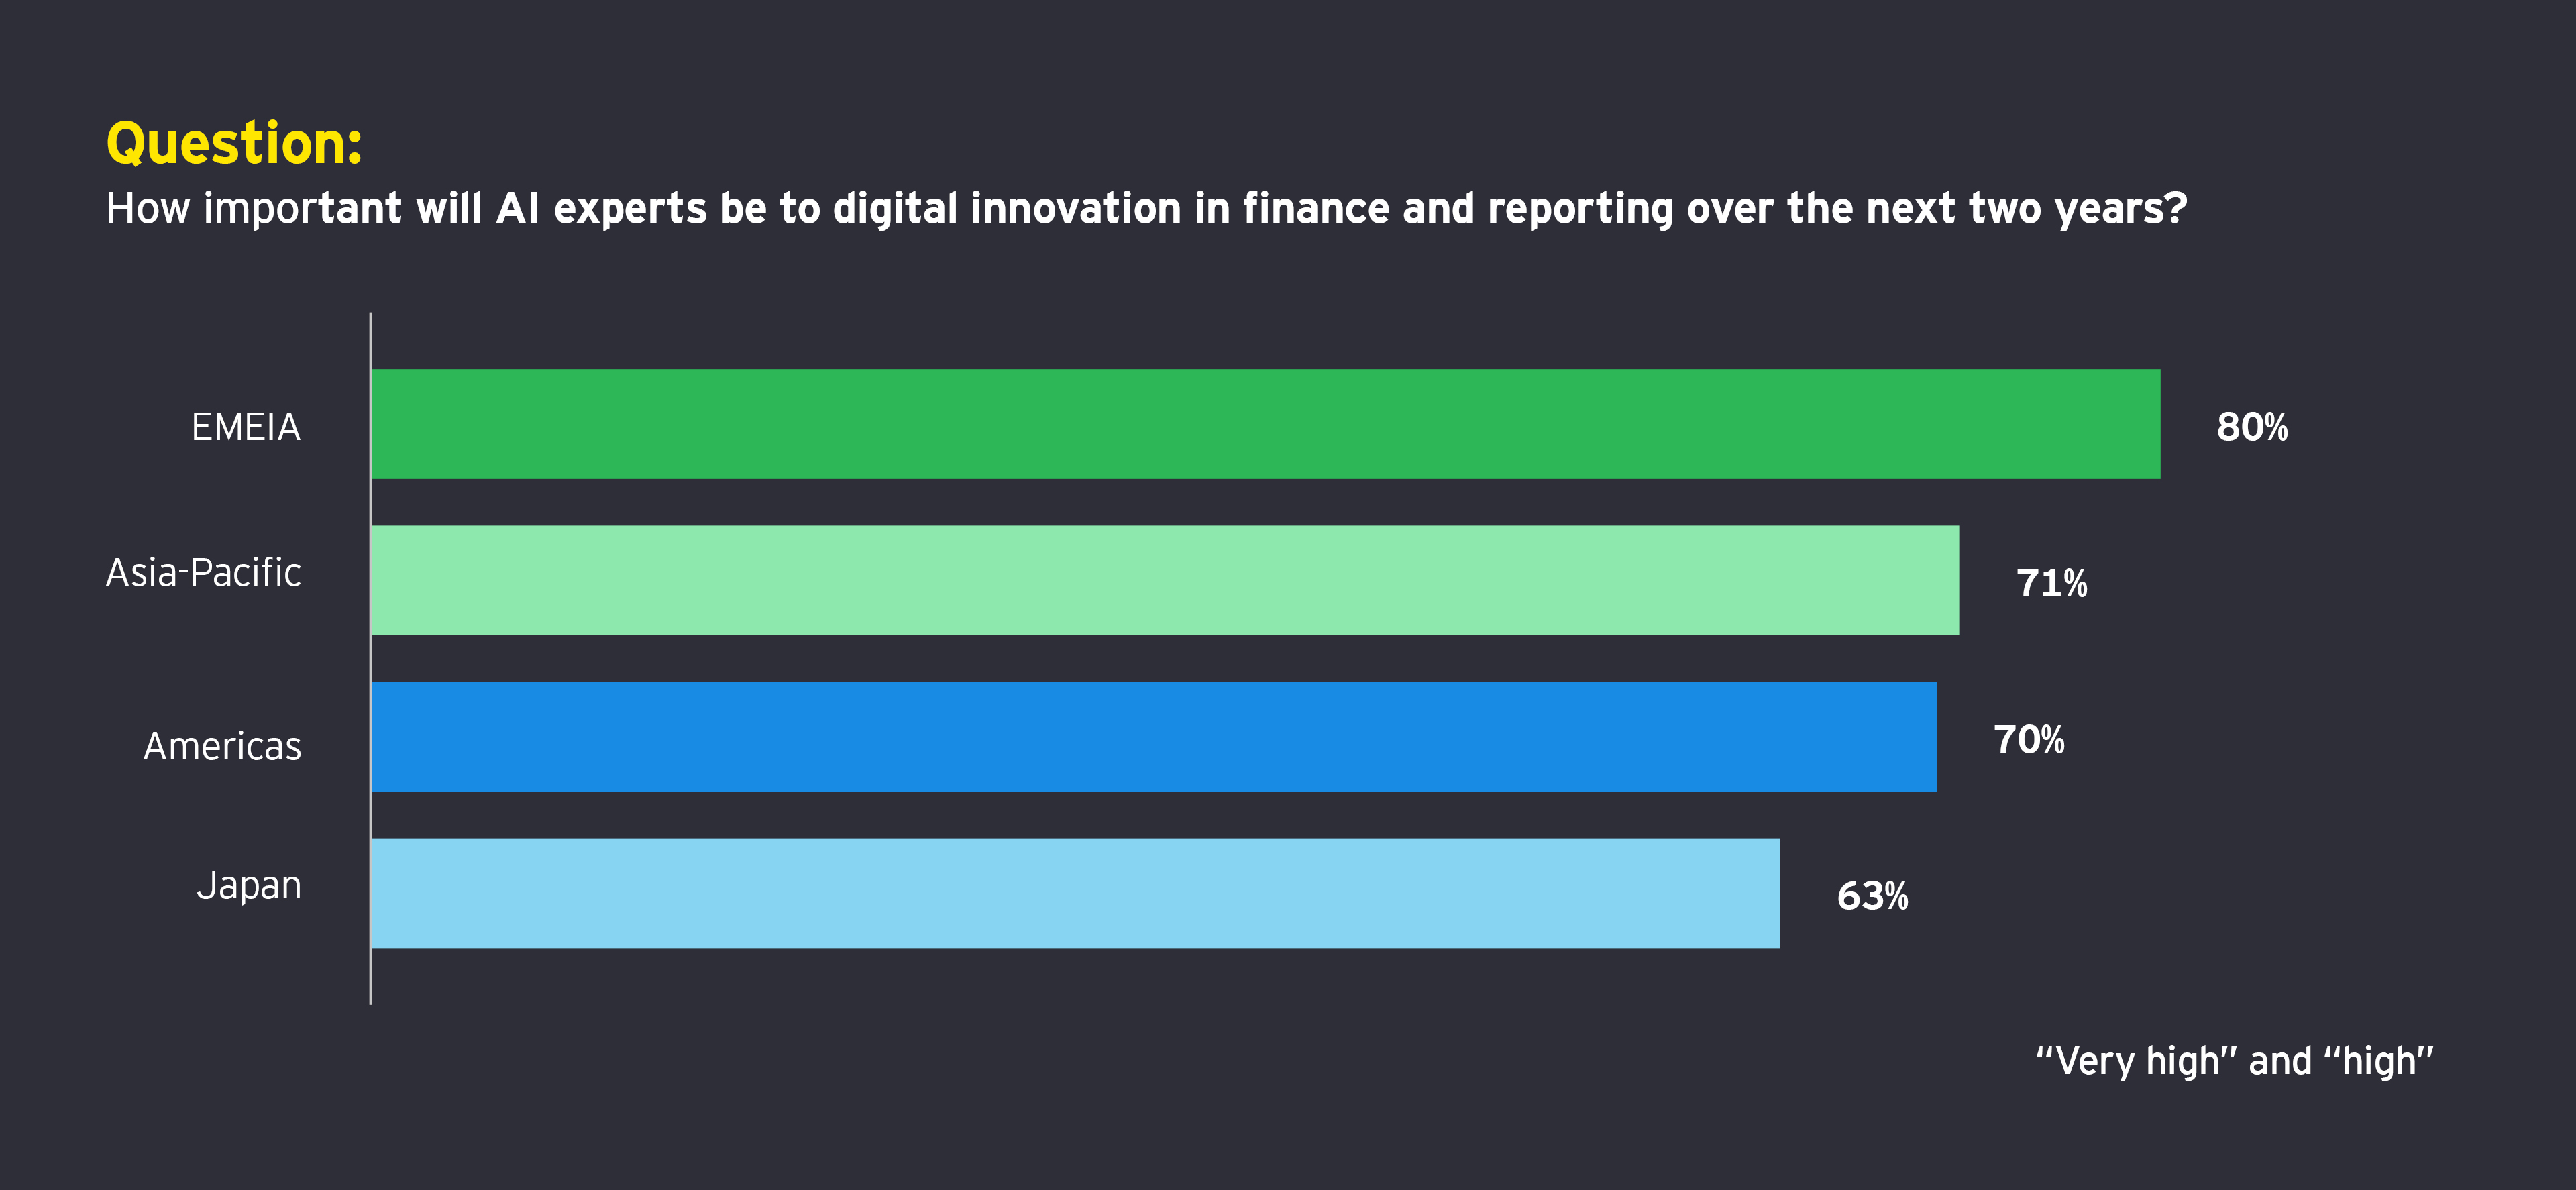 Question: How important will AI experts be to digital innovation in finance and reporting over the next two years?